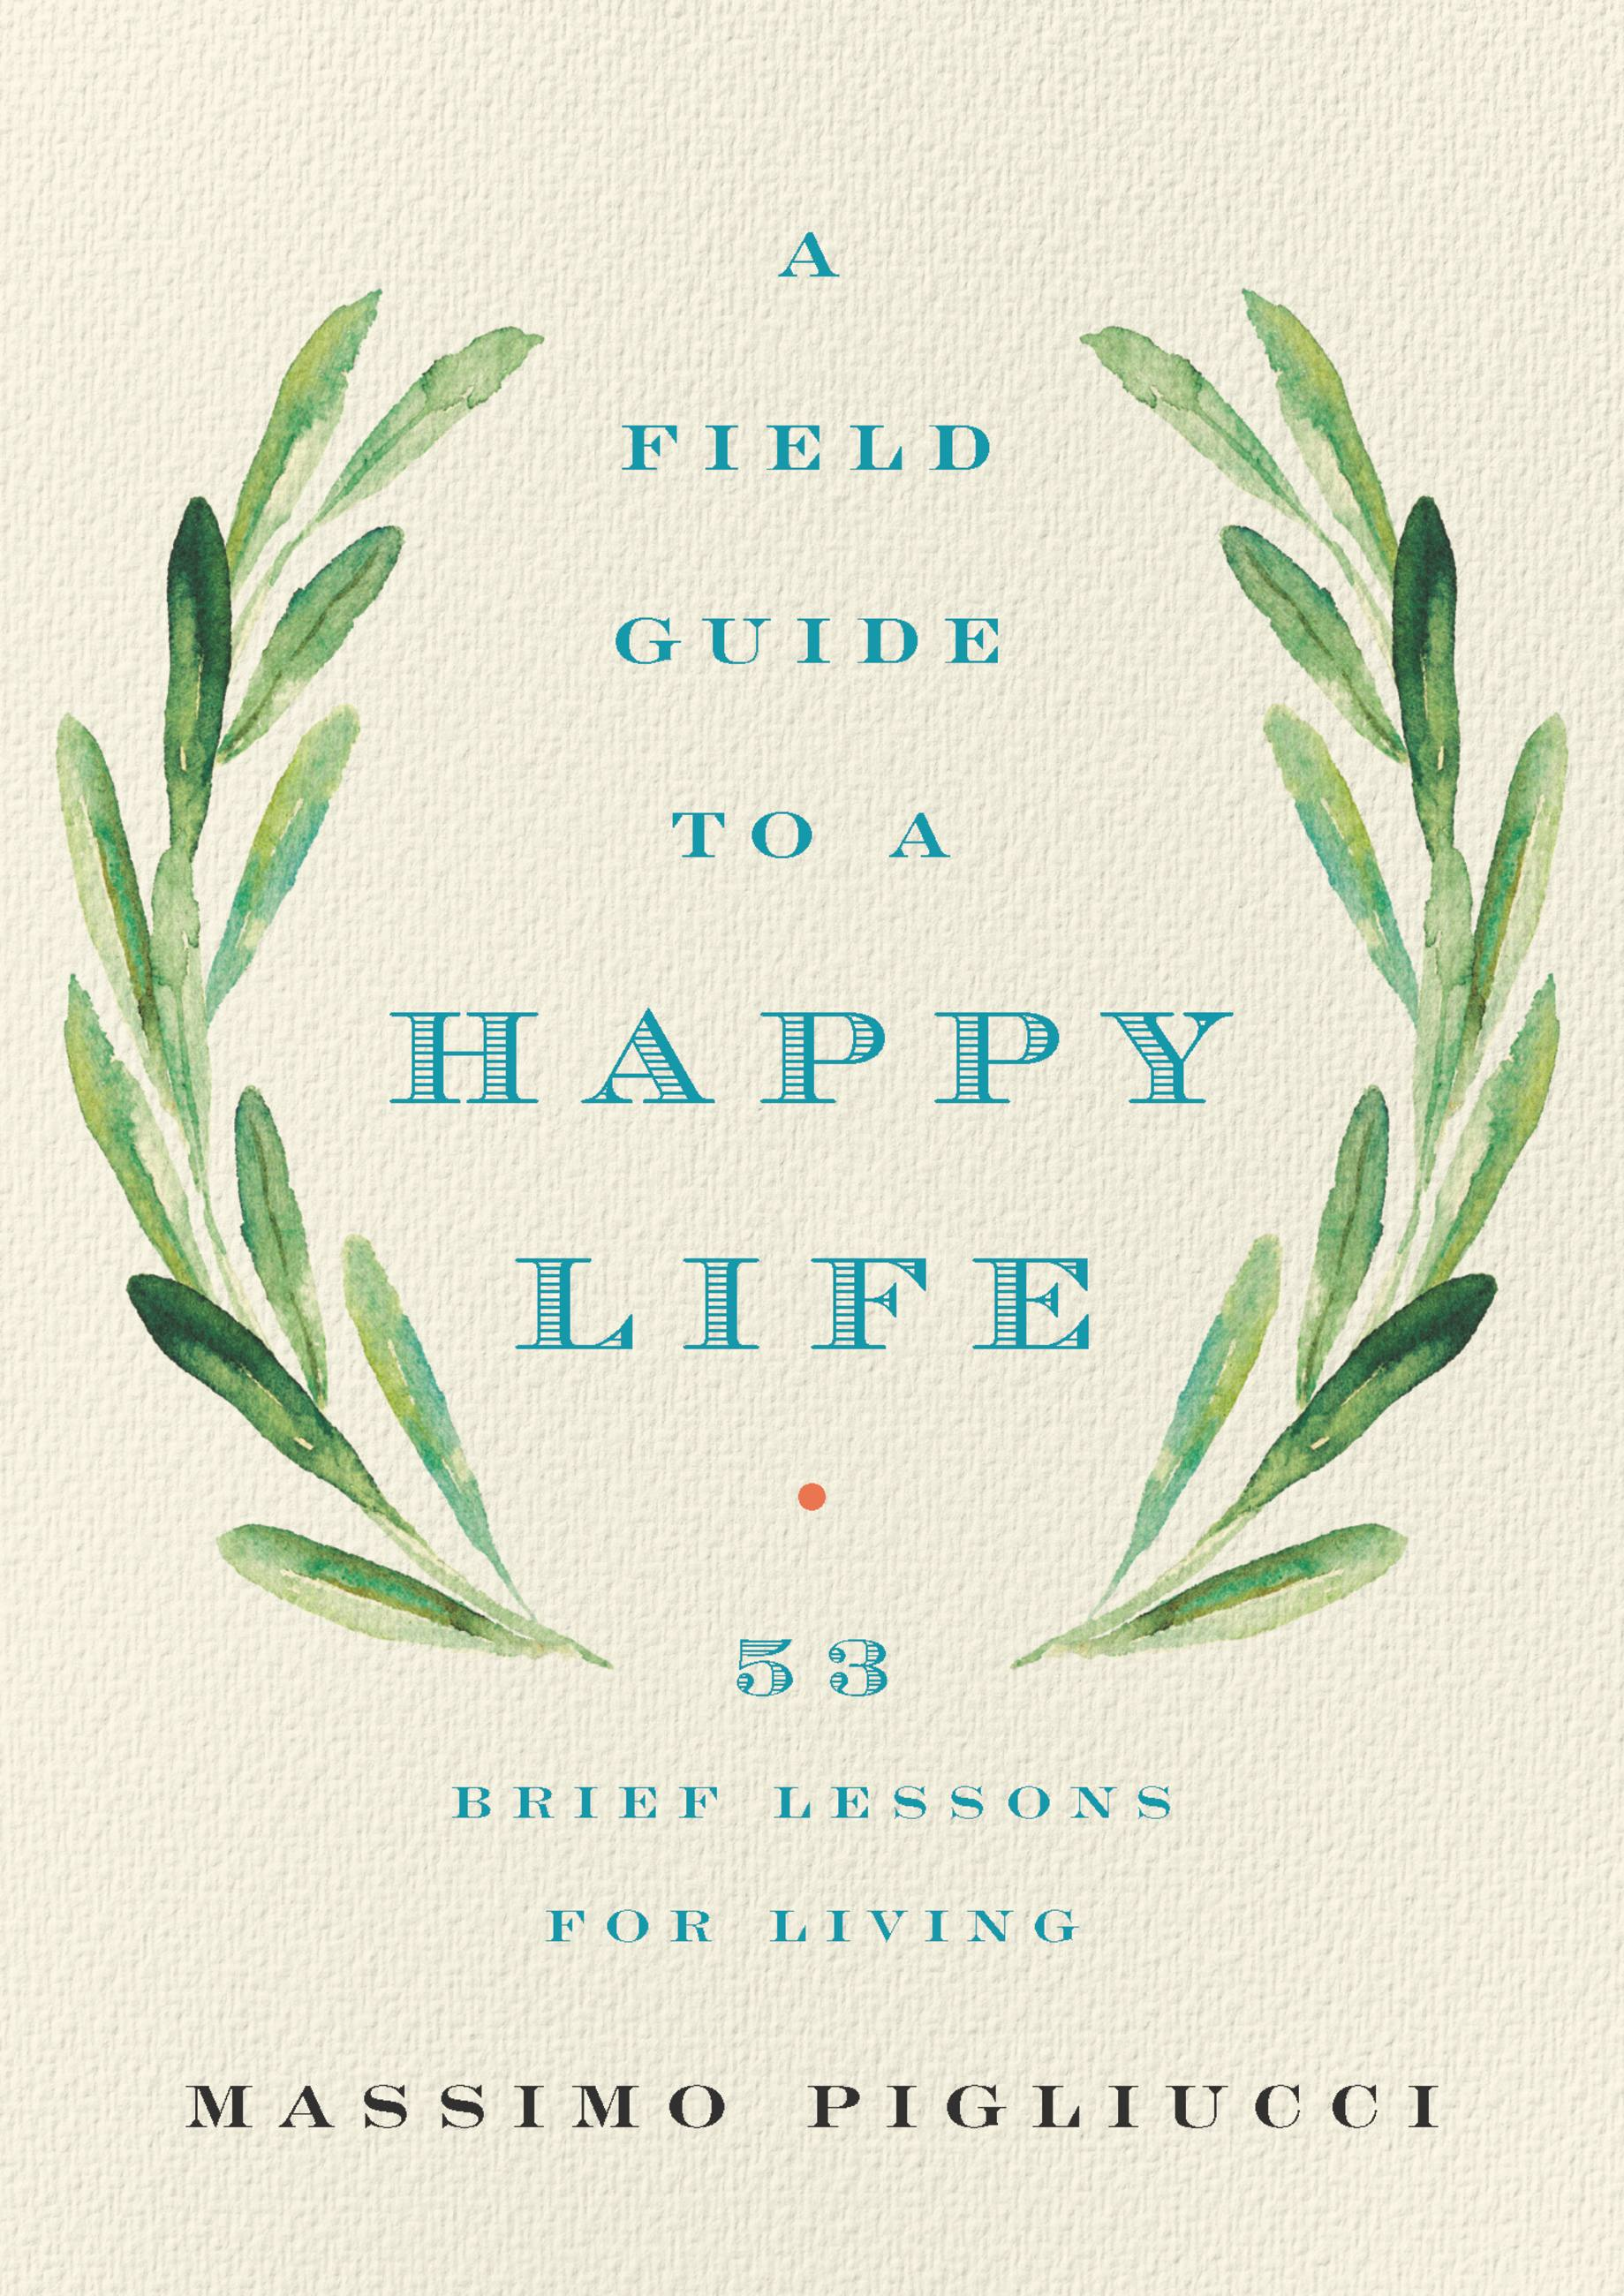 A Field Guide to a Happy Life 53 Brief Lessons for Living